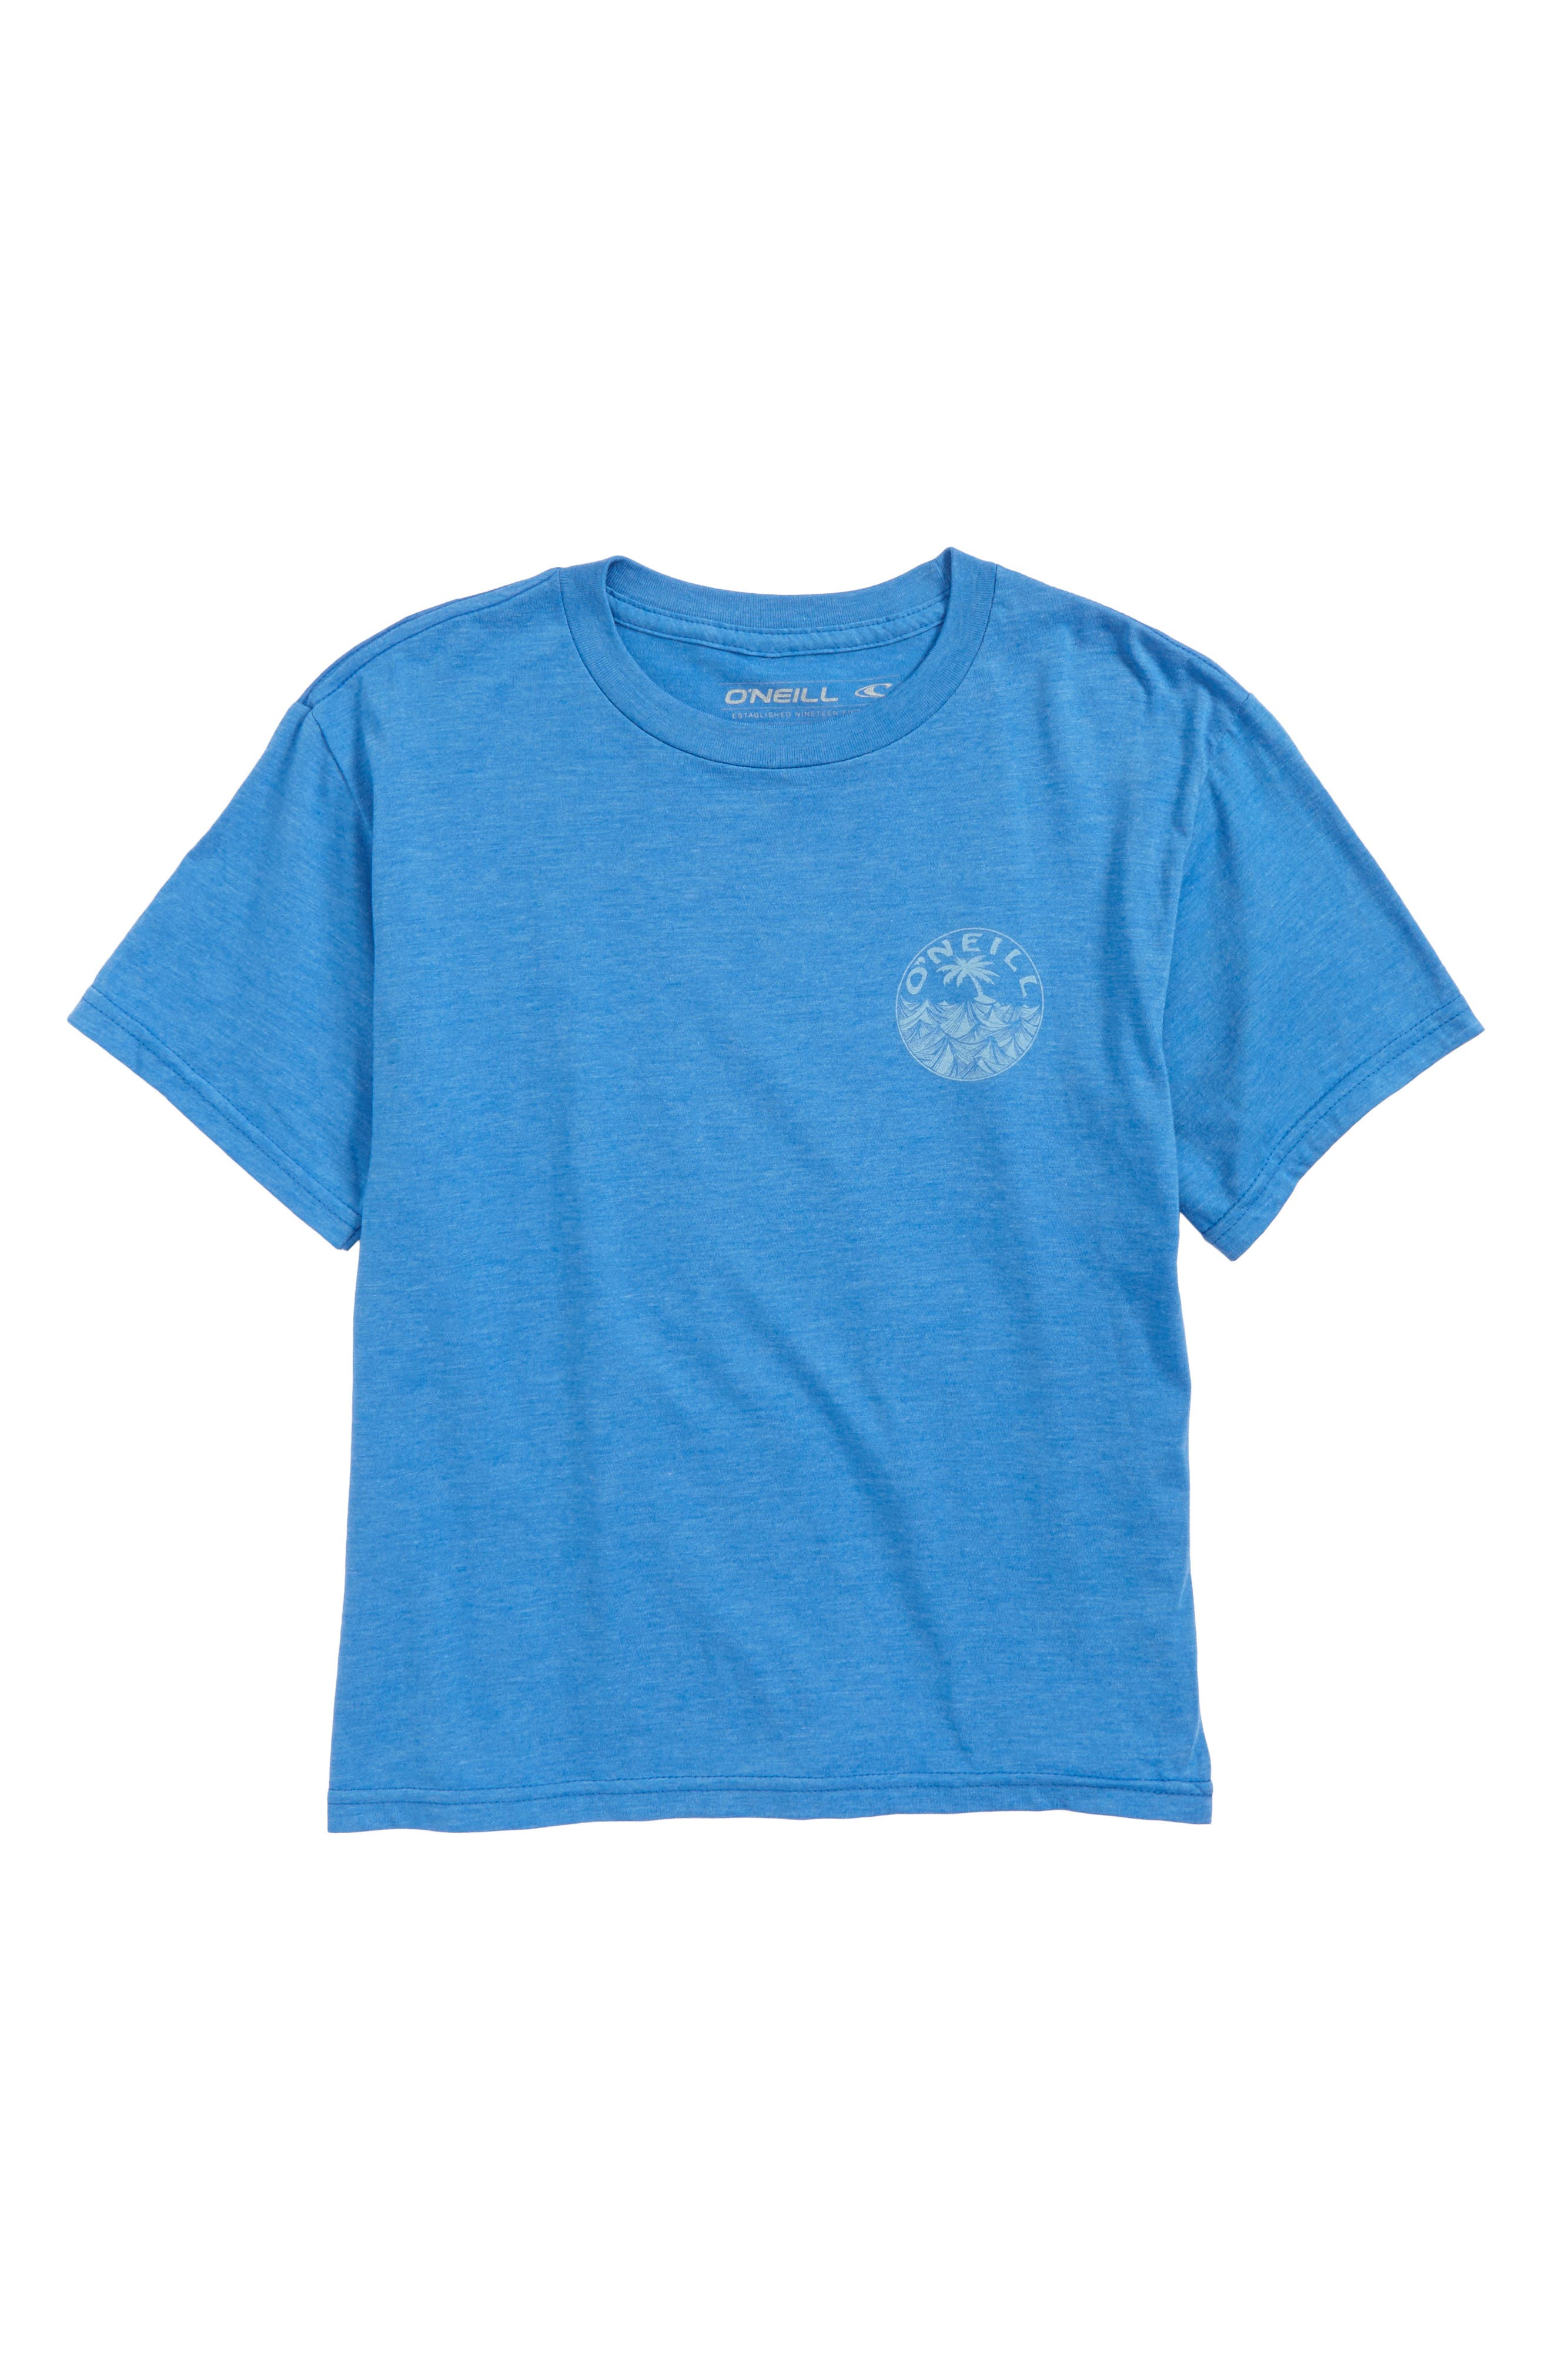 Waver Graphic T-Shirt,                             Main thumbnail 1, color,